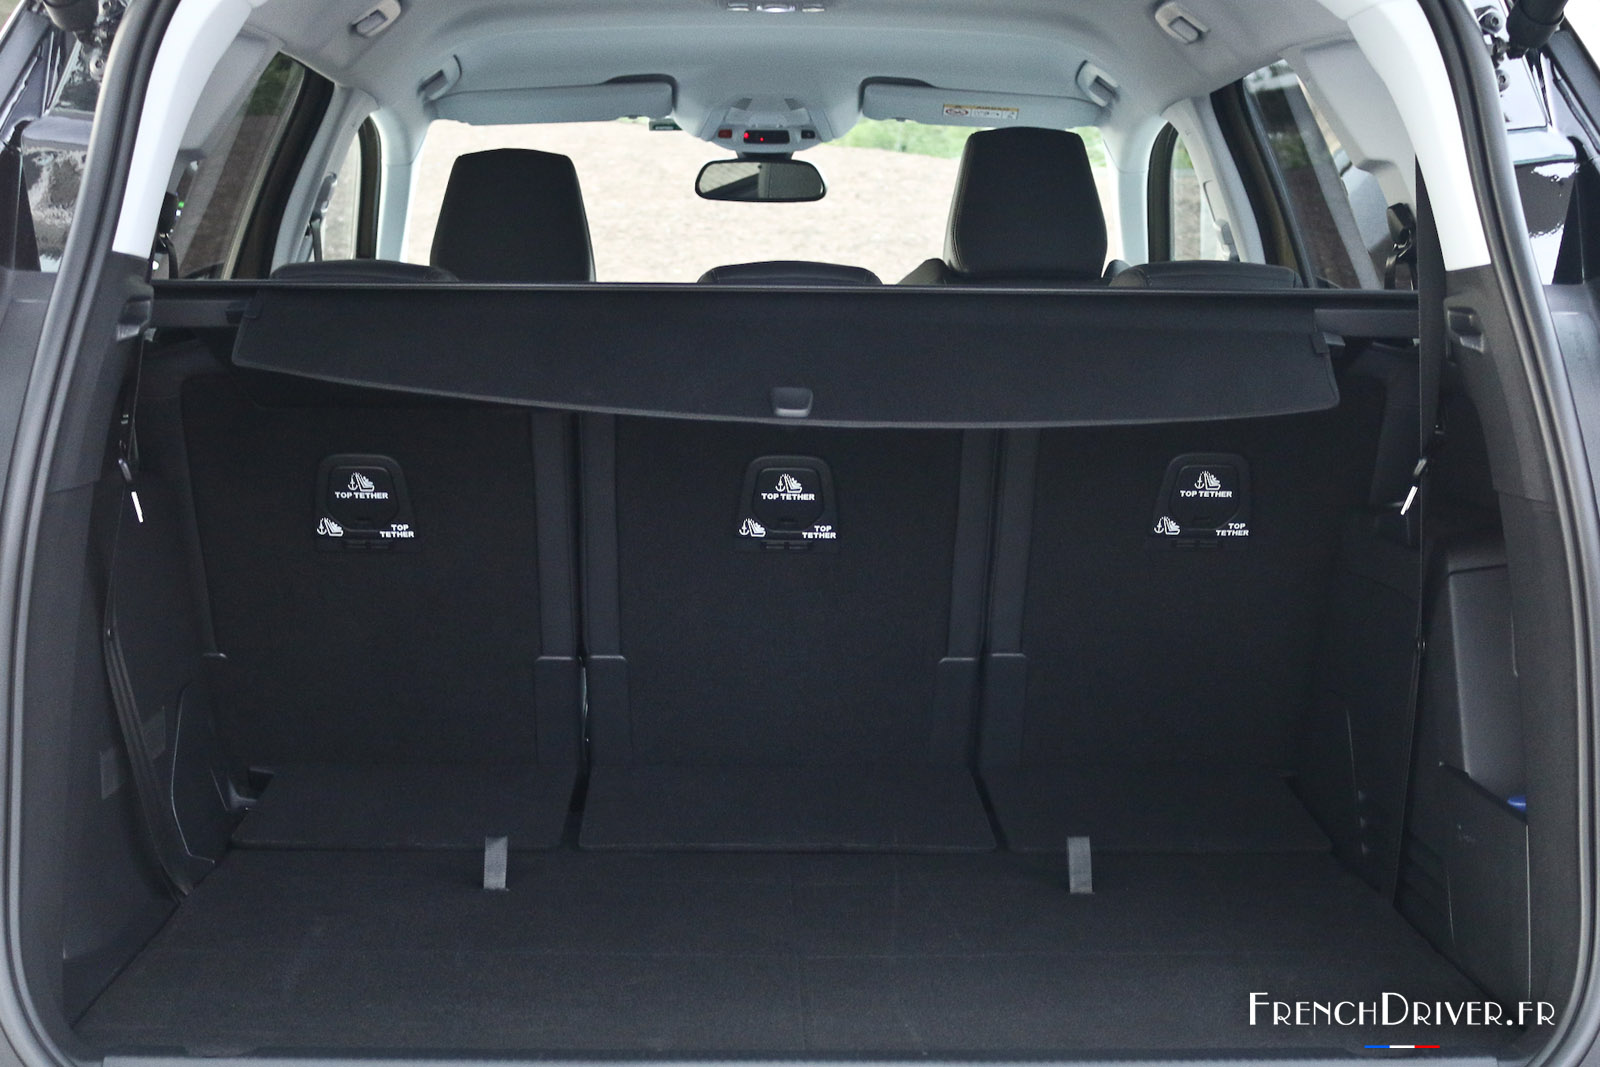 essai peugeot 5008 ii qui m 39 aime me suv french driver. Black Bedroom Furniture Sets. Home Design Ideas